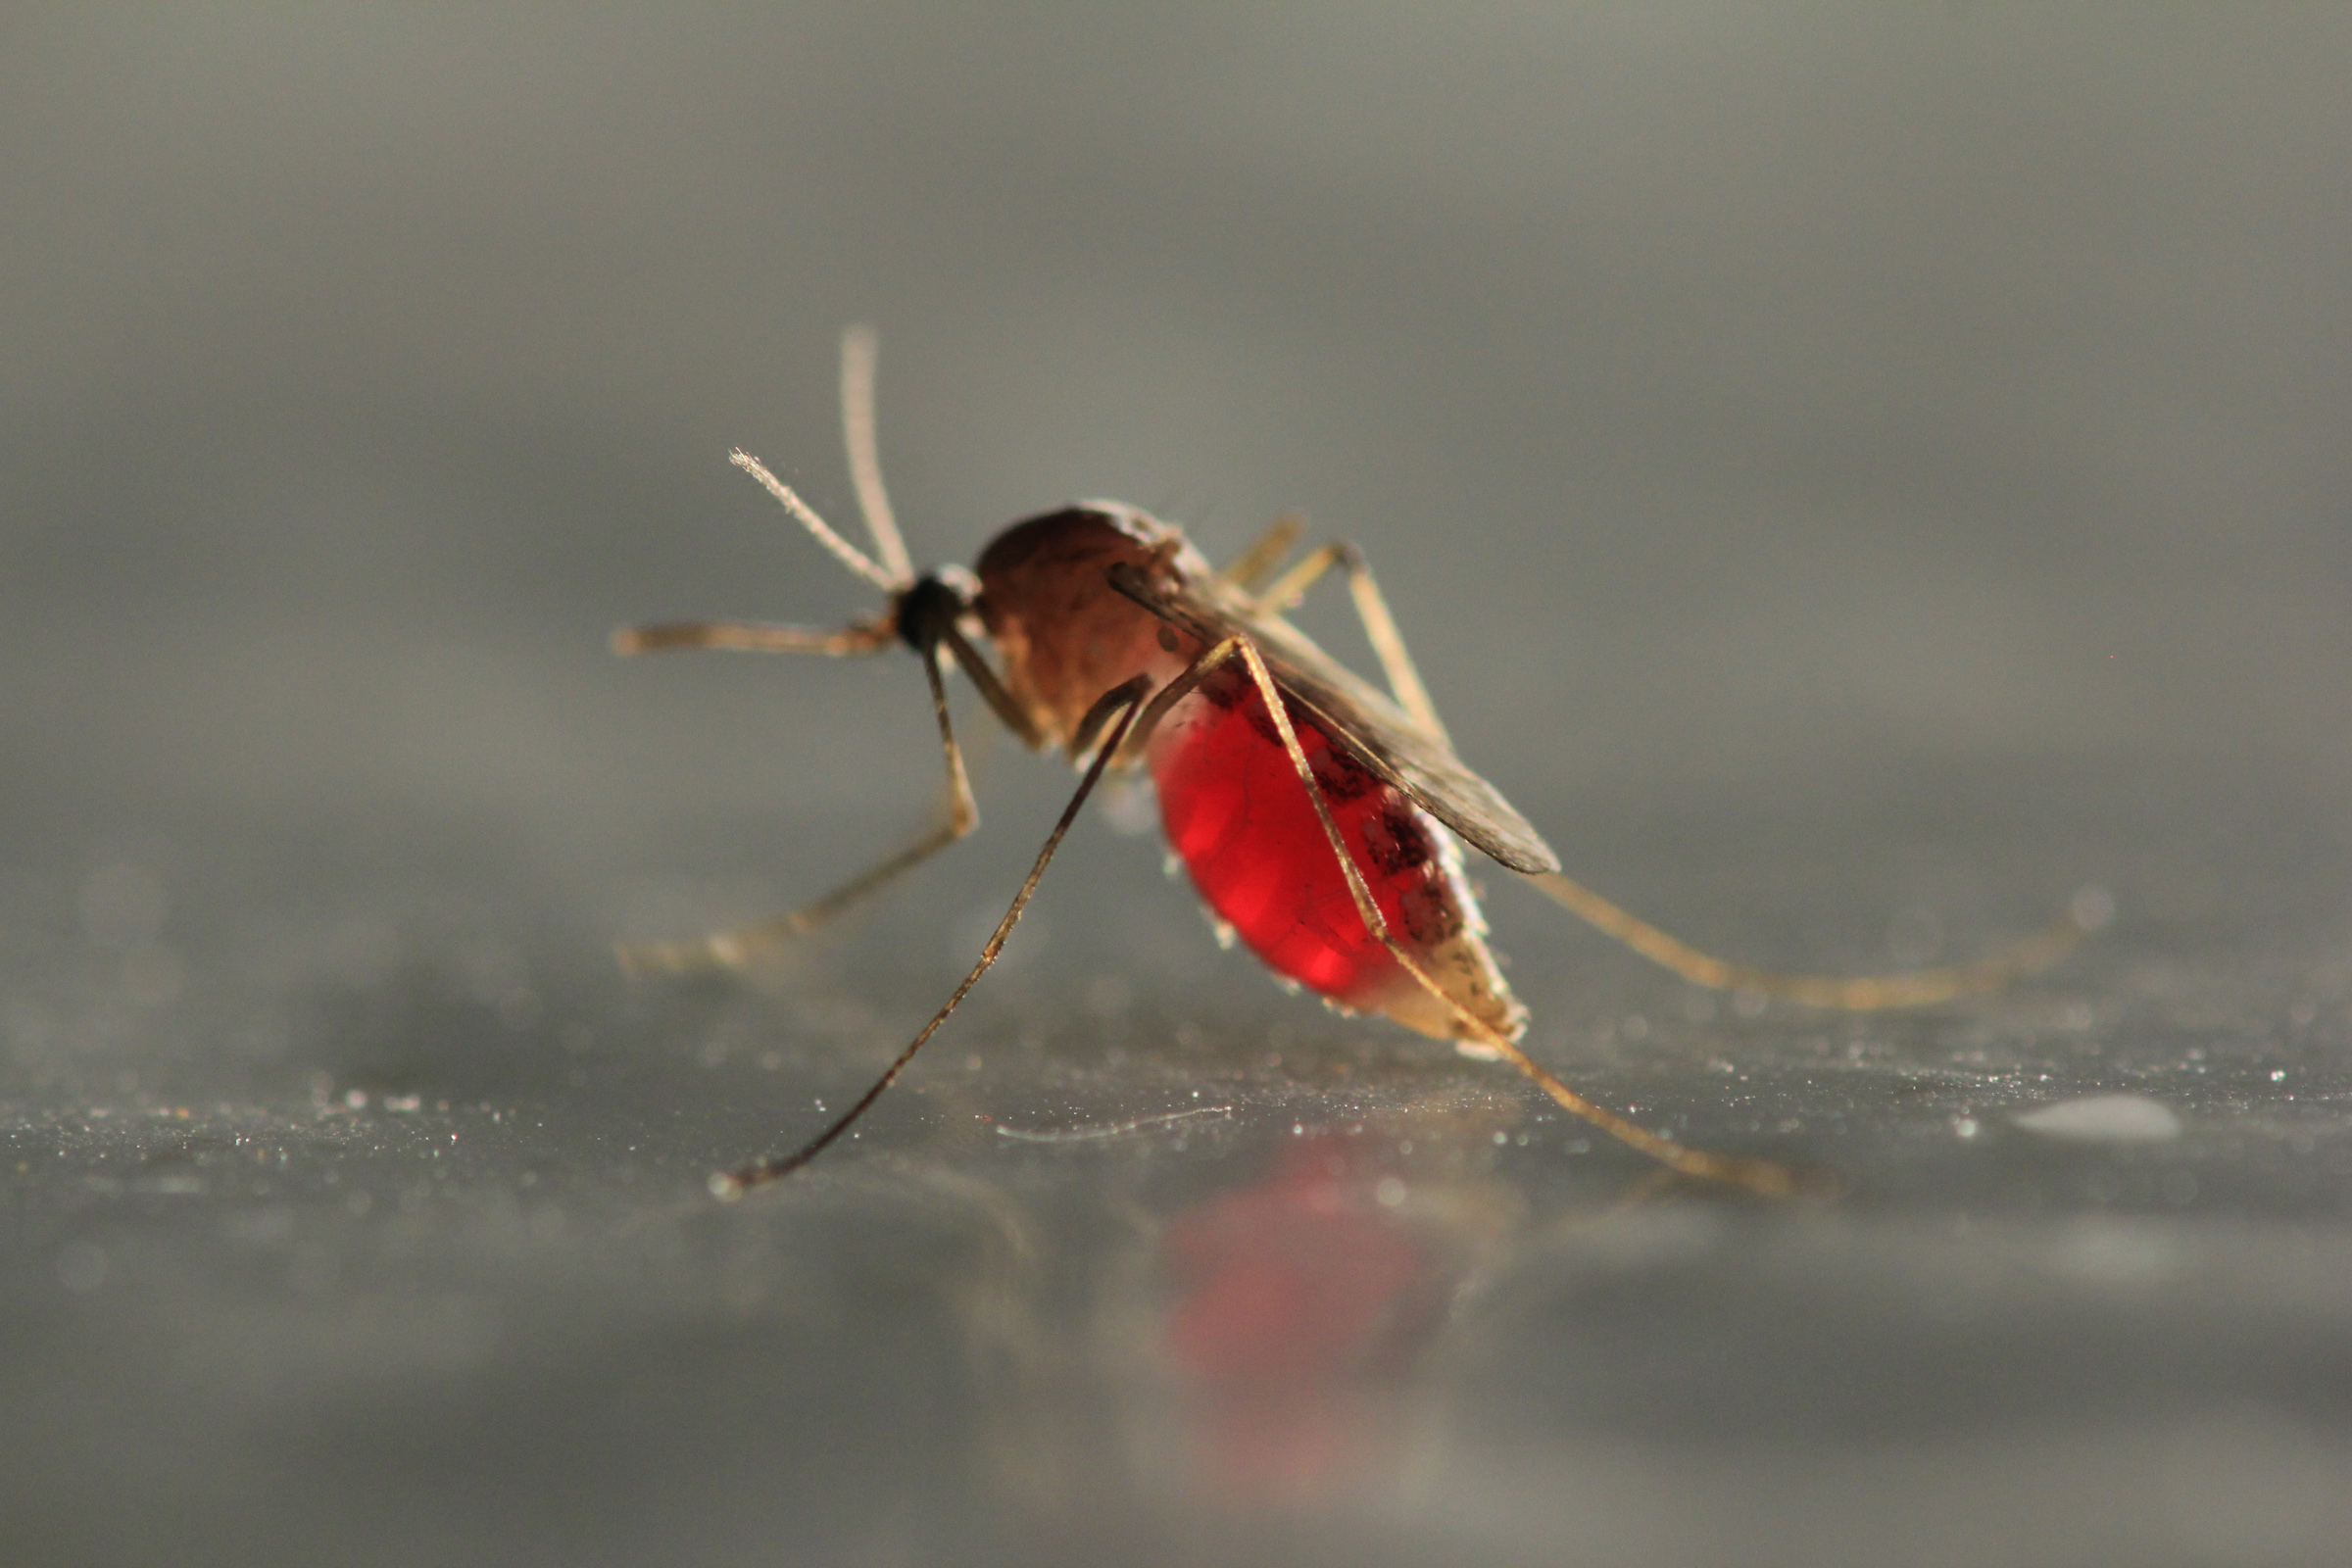 Low-maintenance ways to ward off pesky mosquitoes this summer